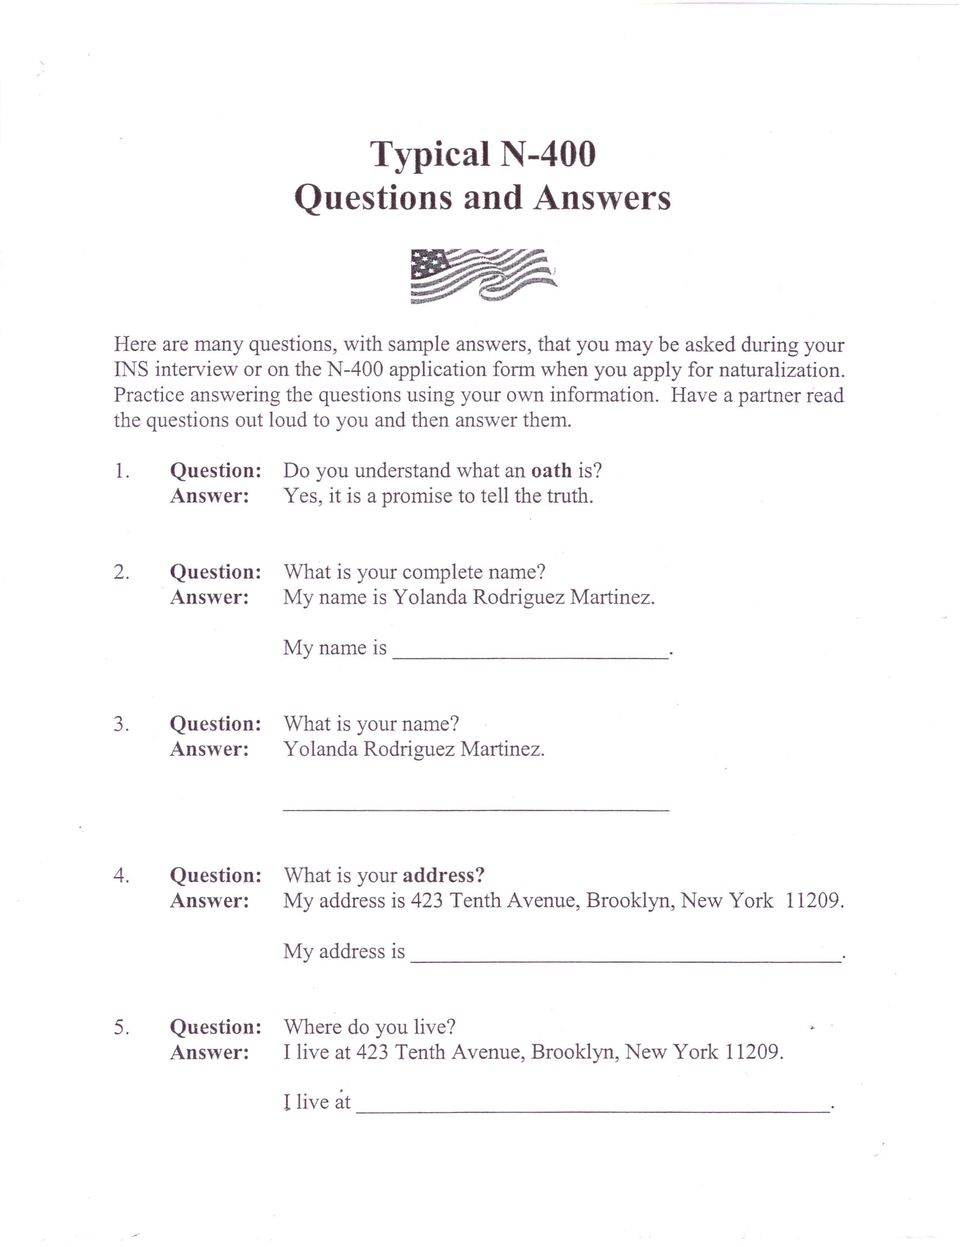 typical n questions and answers pdf do you understand yes it is a promise what an oath is to tell